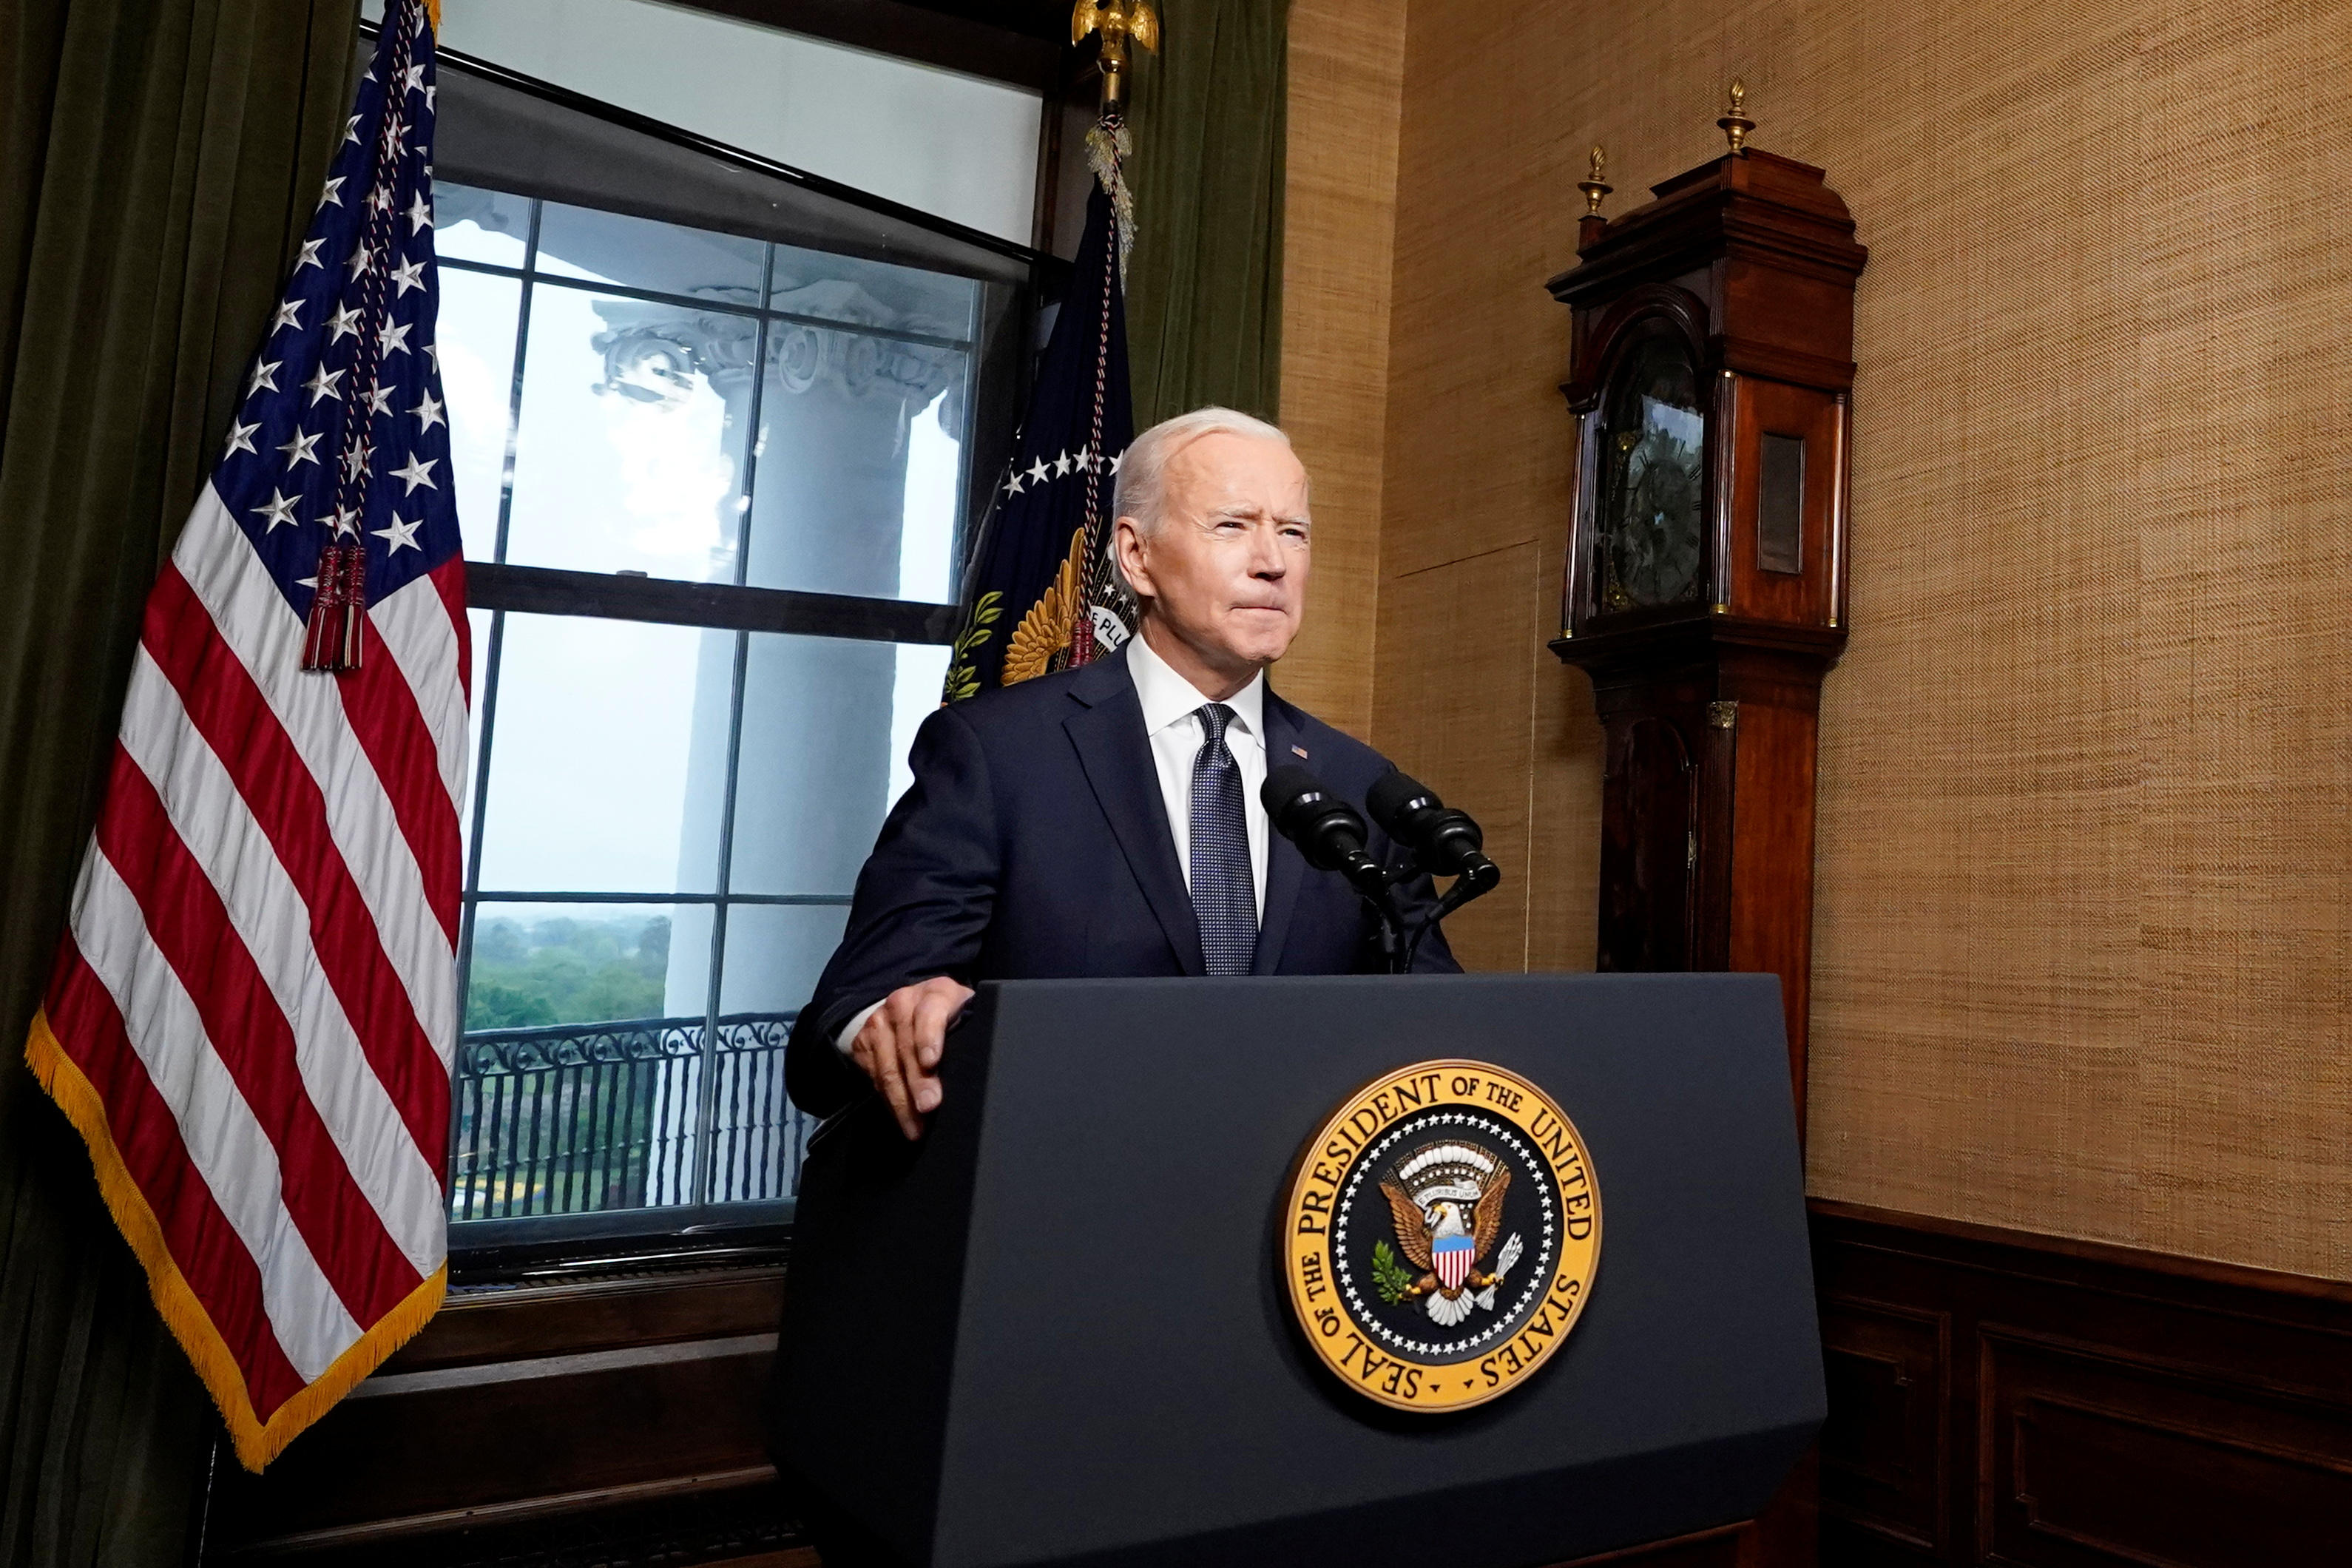 U.S. President Joe Biden delivers remarks on his plan to withdraw American troops from Afghanistan, at the White House, Washington, U.S., April 14, 2021. Andrew Harnik/Pool via REUTERS